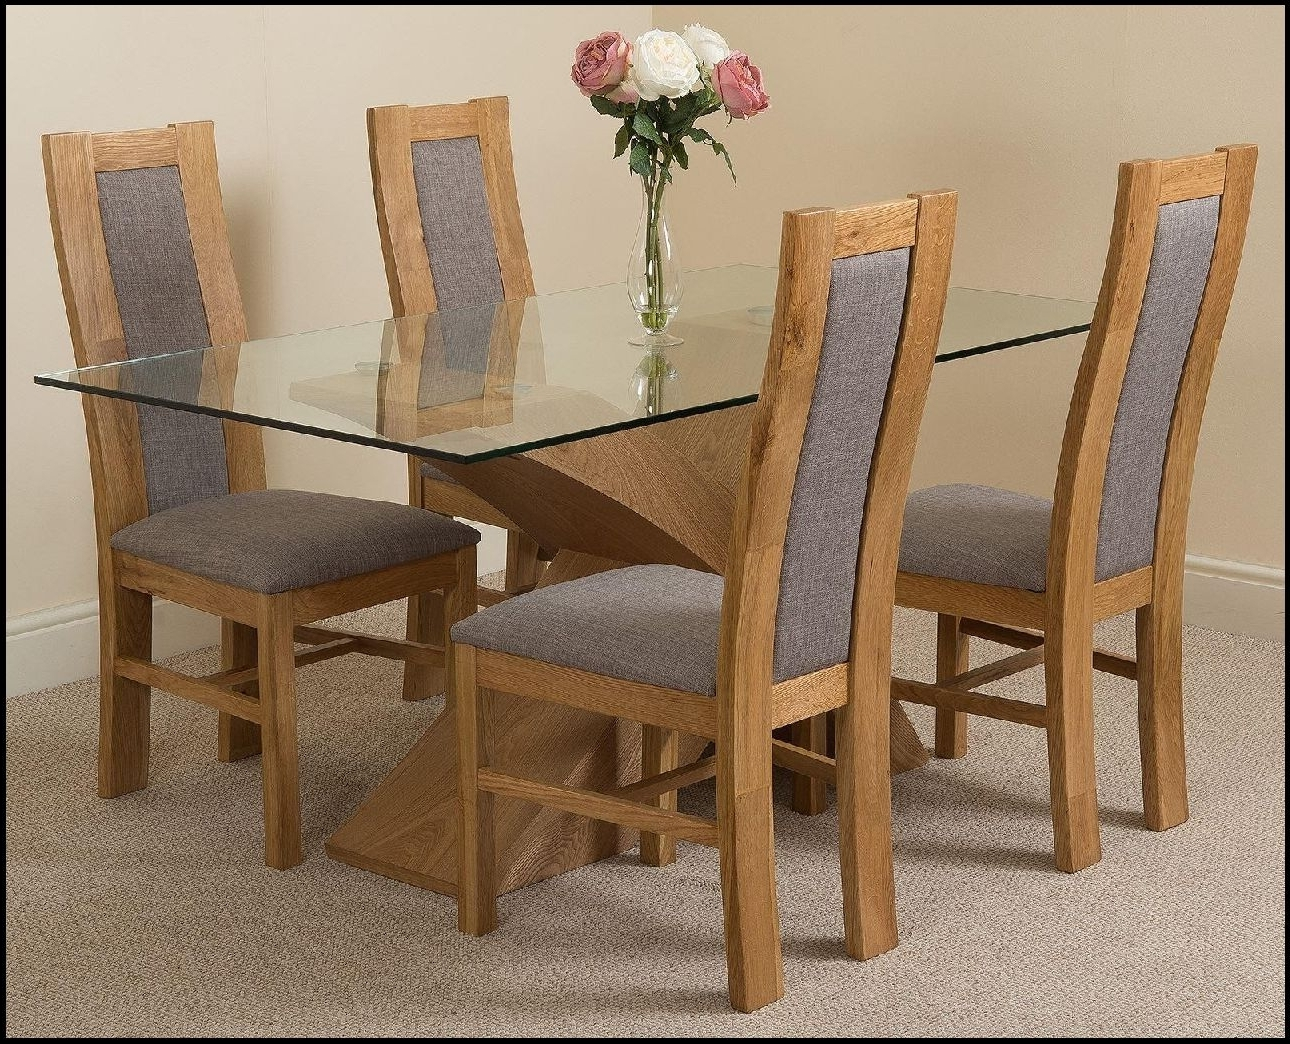 2017 Wonderfull Cube Oak 160 Cm Dining Table And 6 Chairs Quercus Living With Oak Glass Dining Tables (View 1 of 25)